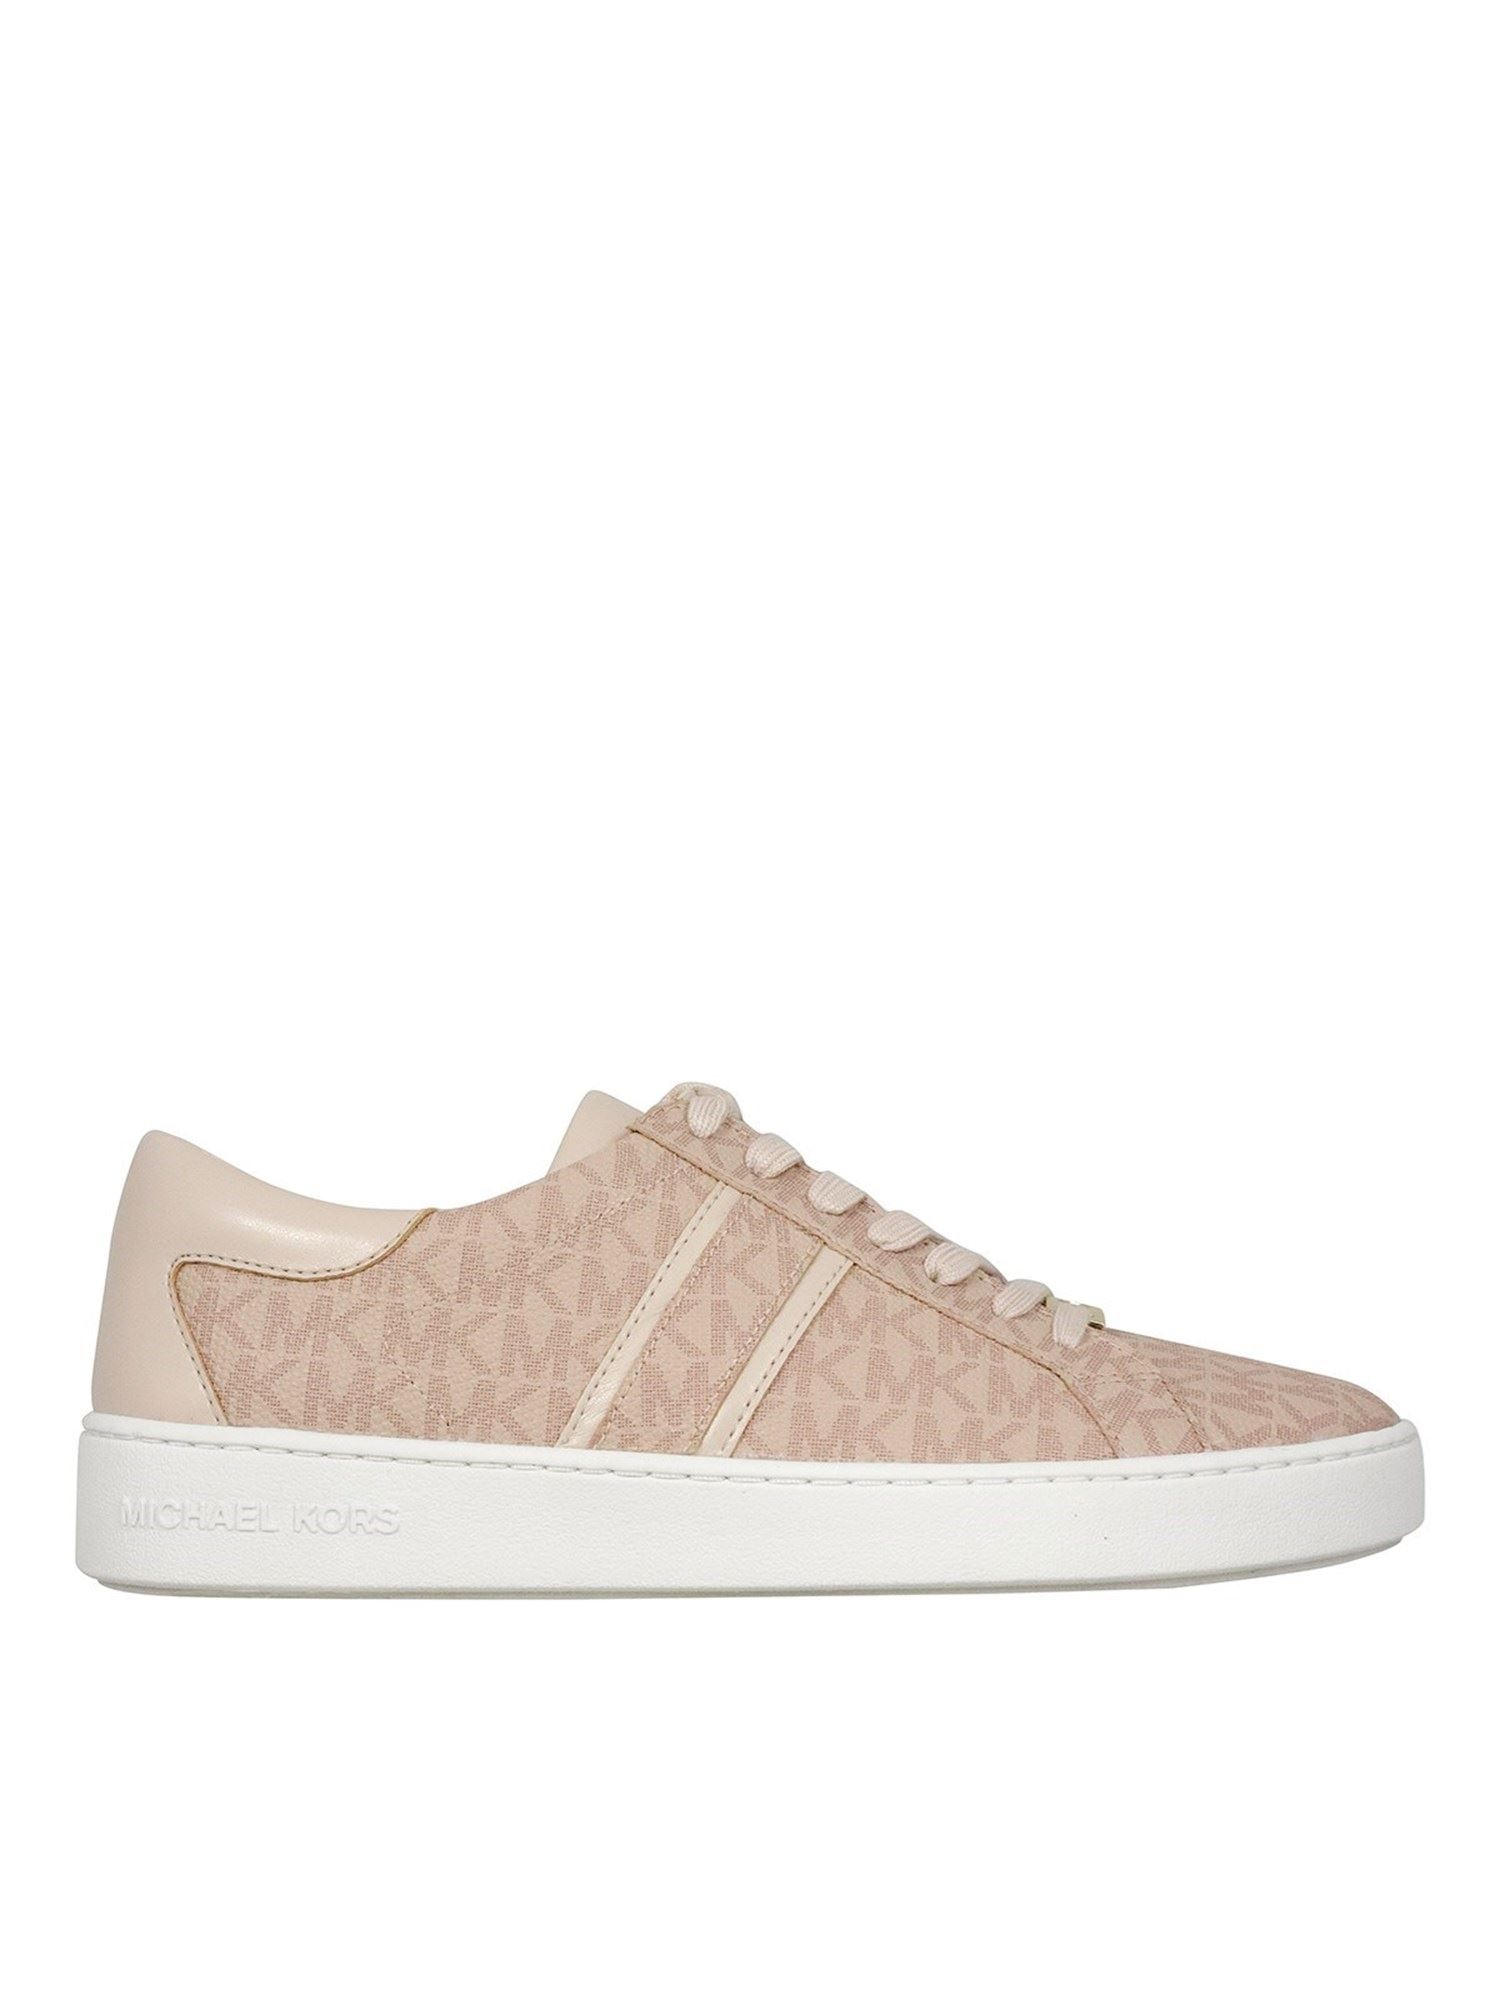 Michael Kors KEATON SNEAKERS IN PINK